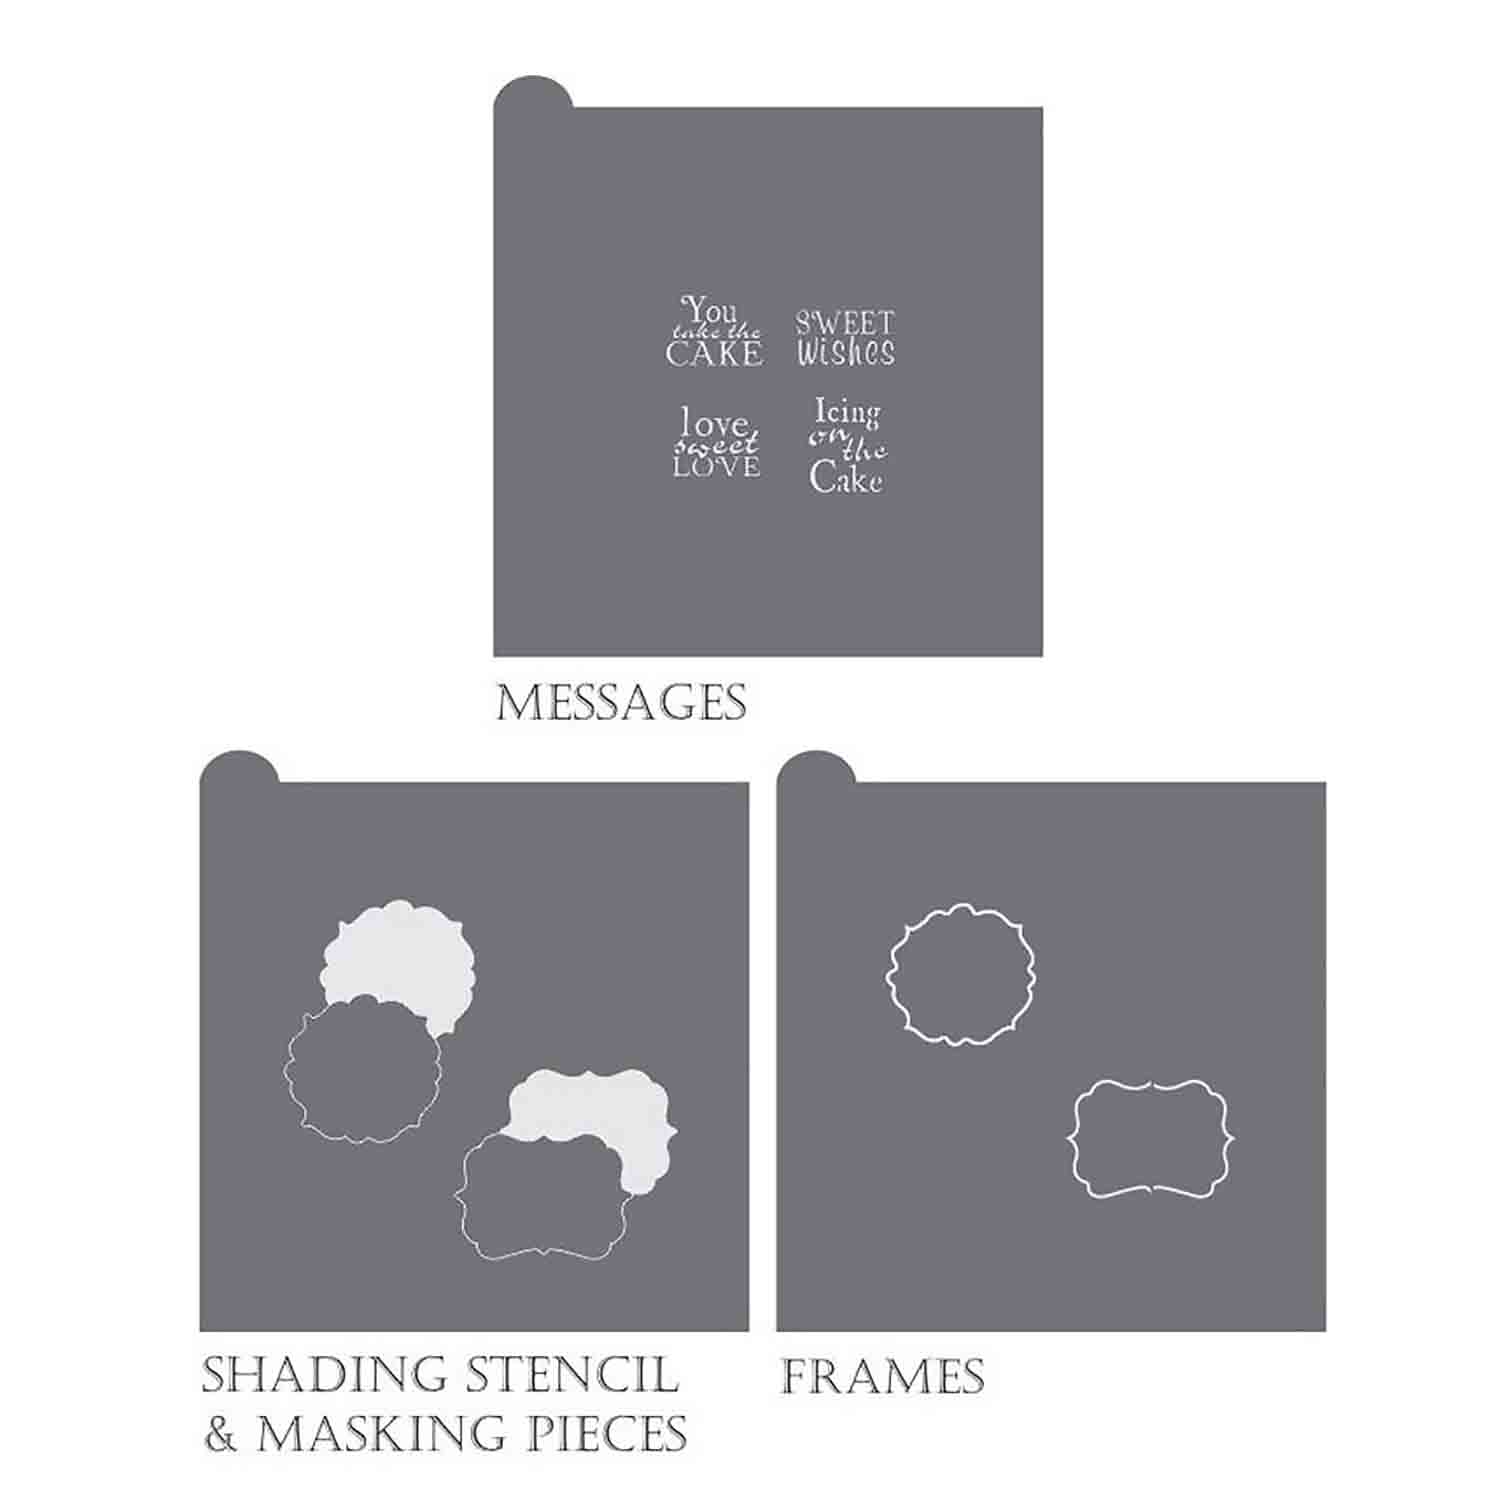 Take the Cake Message and Frame Stencil Set